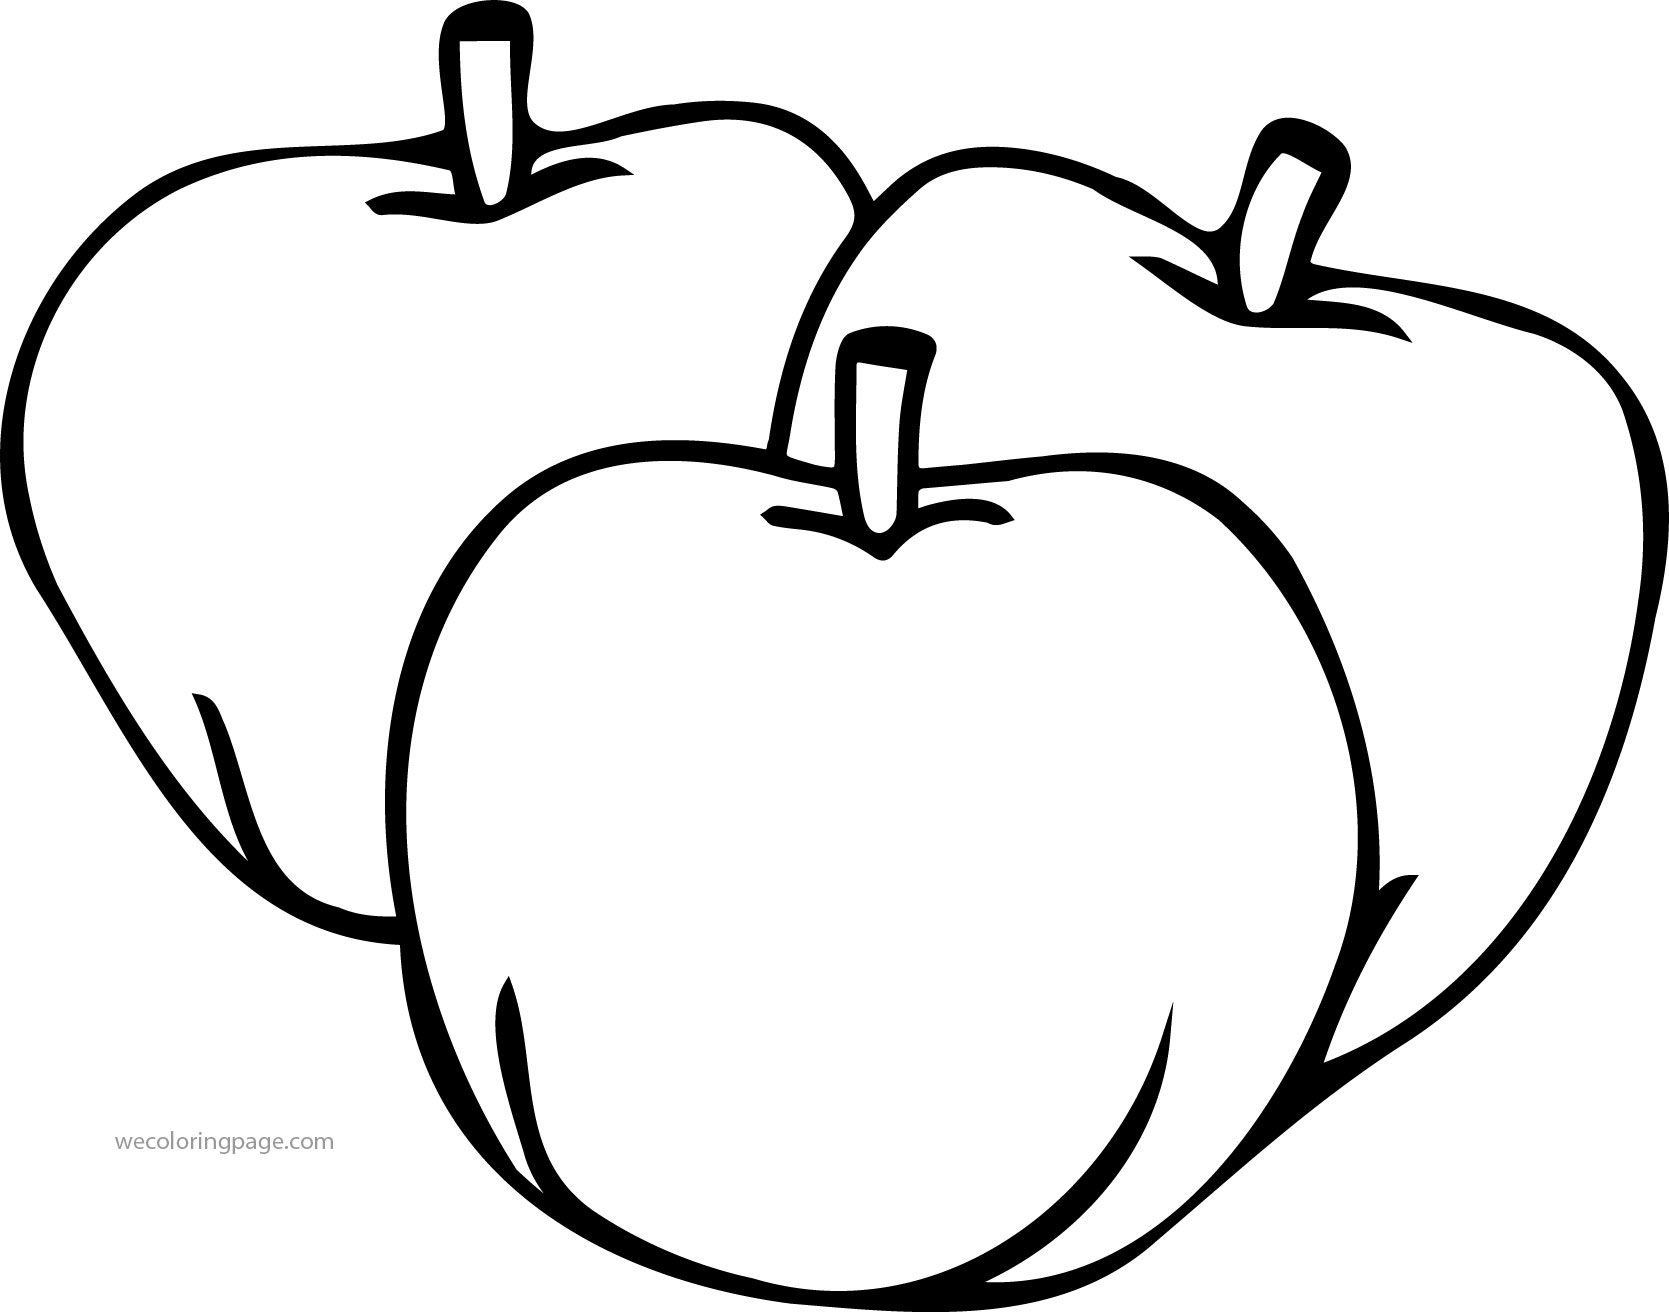 coloring pages for apples free printable apple coloring pages for kids apples pages coloring for